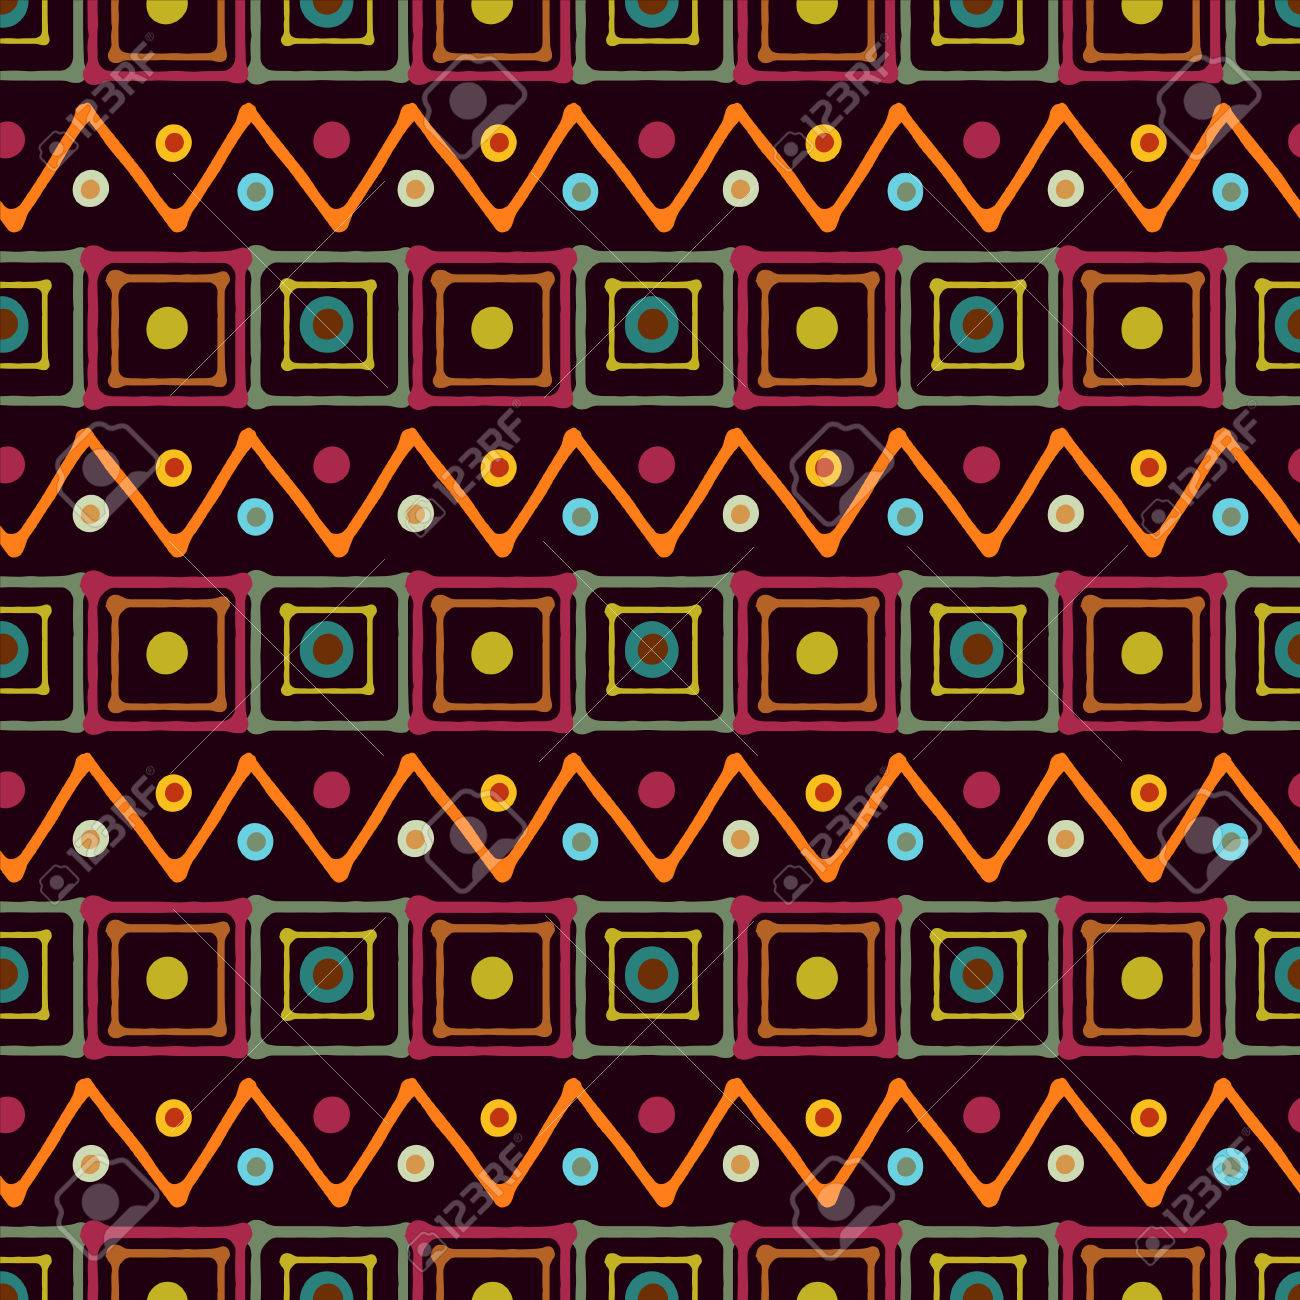 african print wallpaper  Rainbow Abstract Art Seamless Pattern With Squares, Circles ...